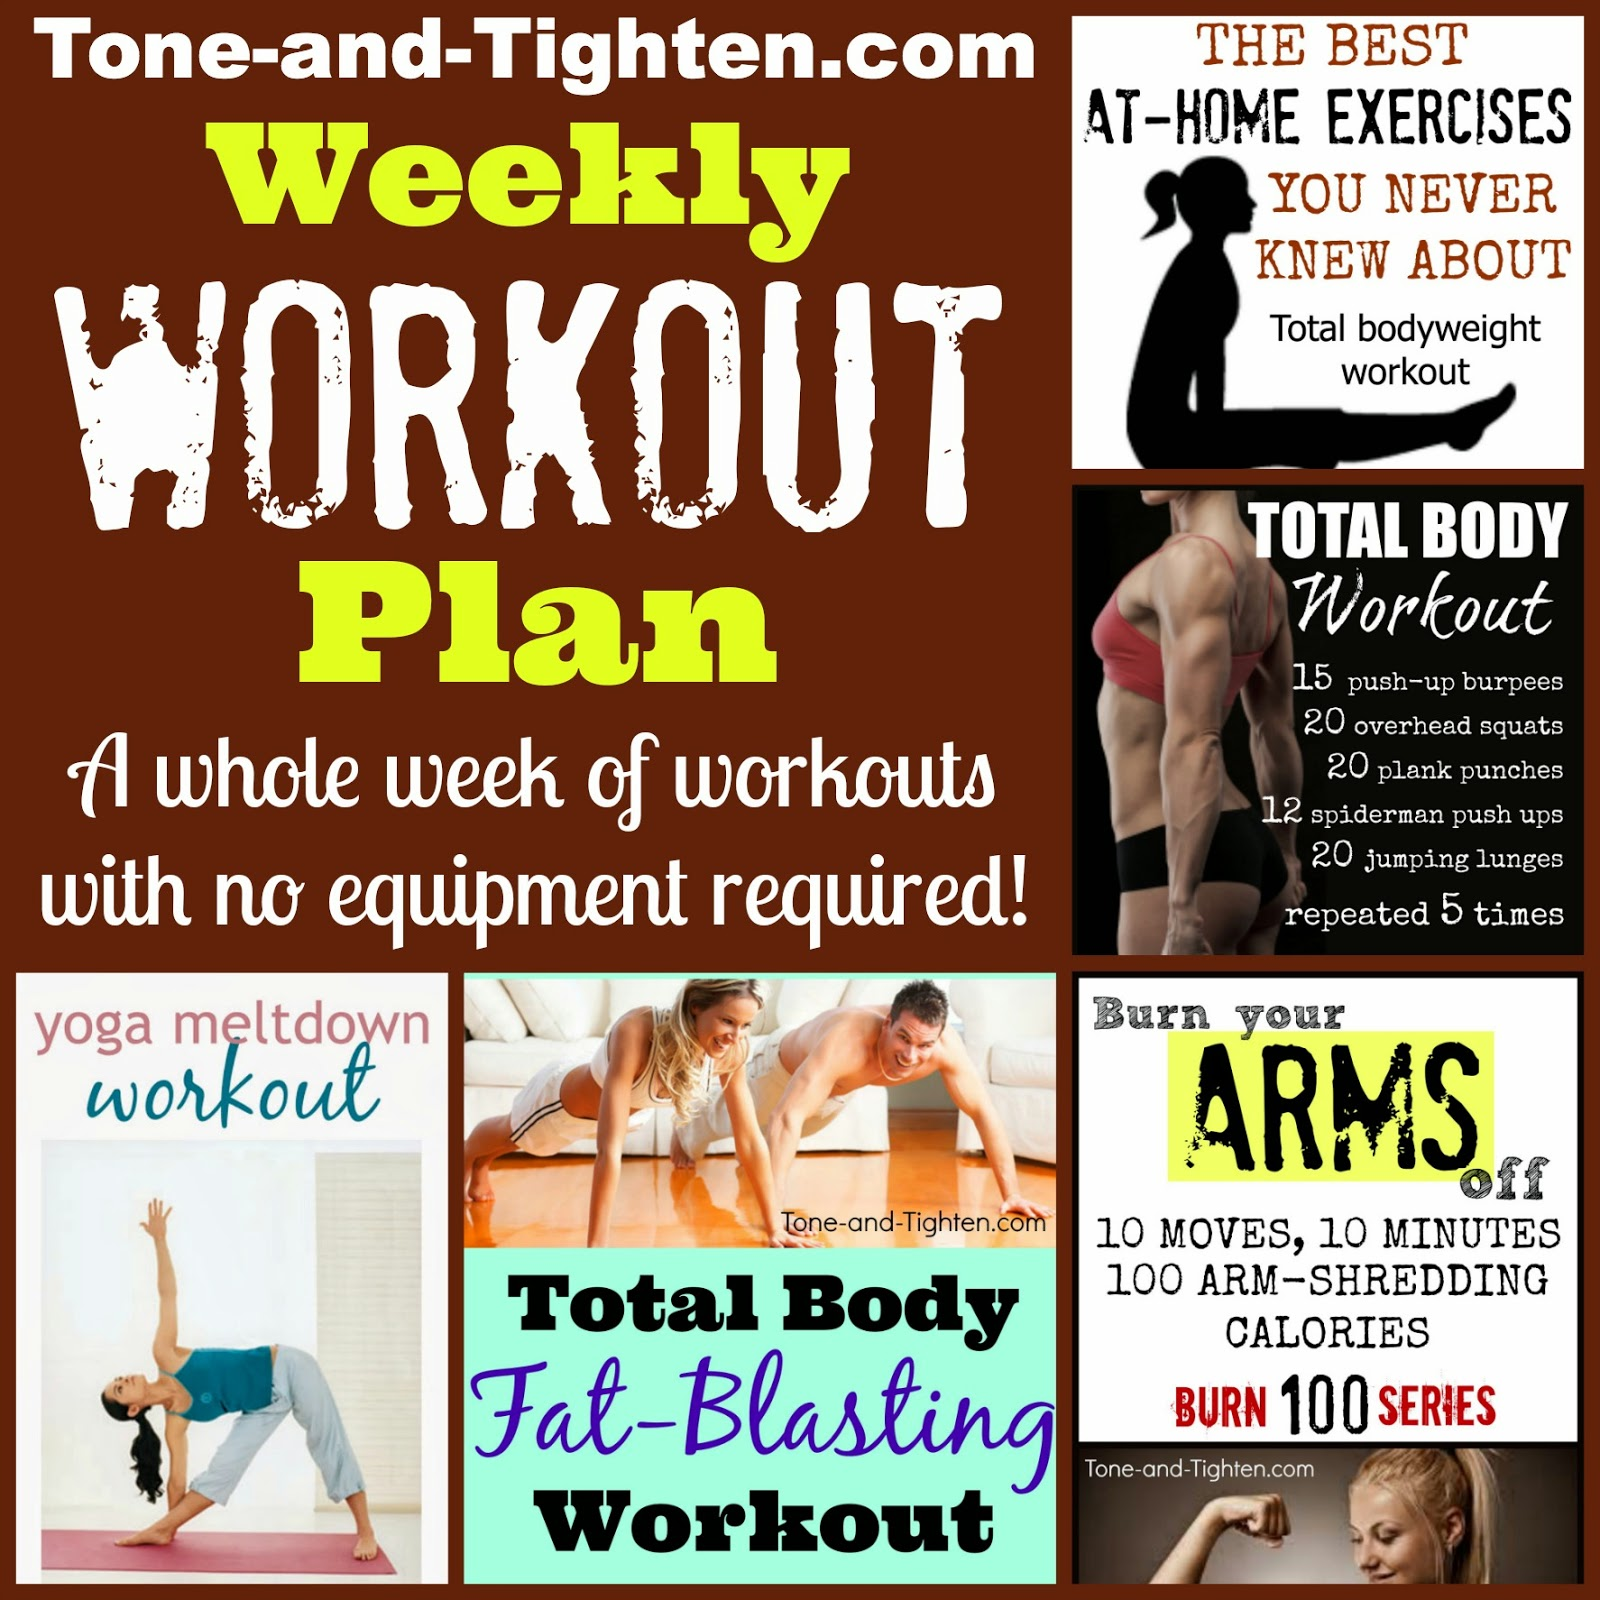 http://tone-and-tighten.com/2014/03/weekly-workout-plan-at-home-workouts-with-no-weights-required.html